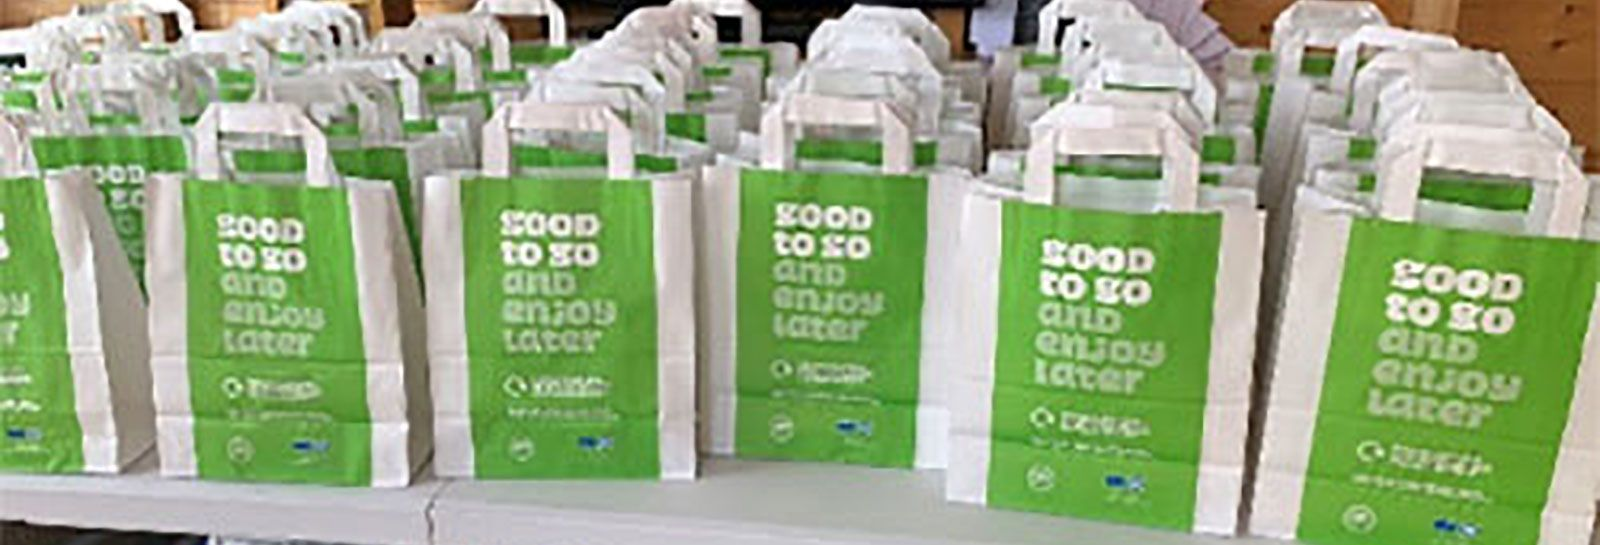 Food bags organised by Menstrie Community Council banner image